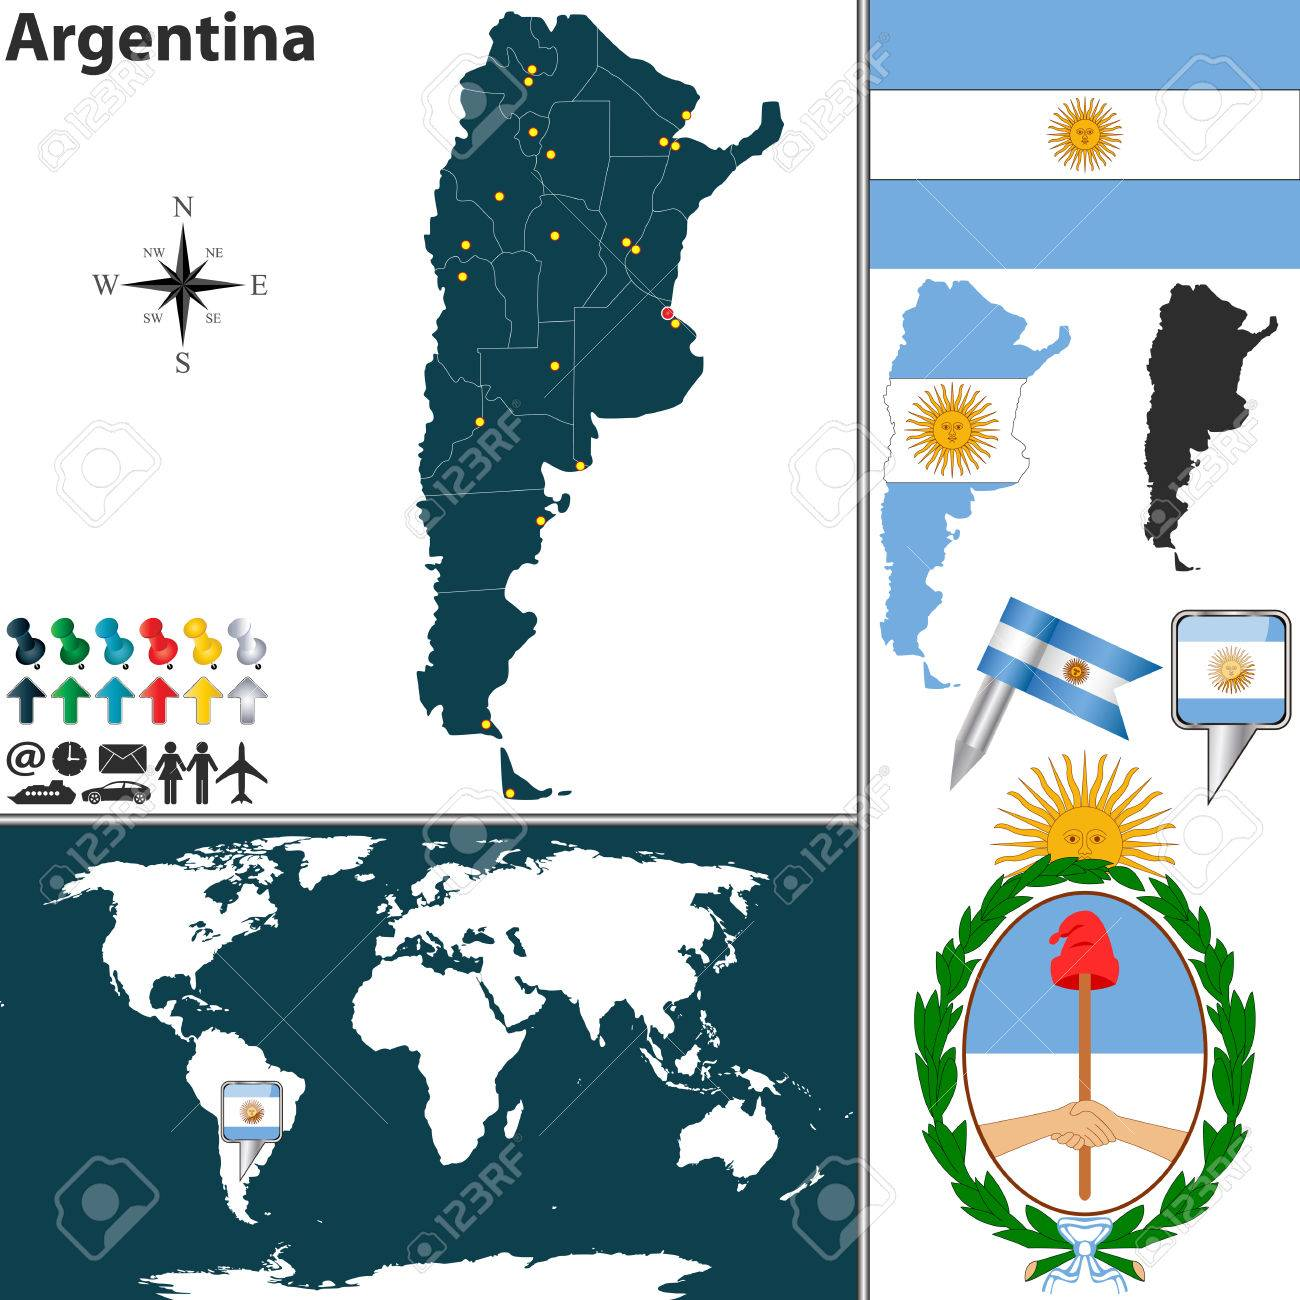 Vector map of argentina with regions coat of arms and location vector vector map of argentina with regions coat of arms and location on world map gumiabroncs Images